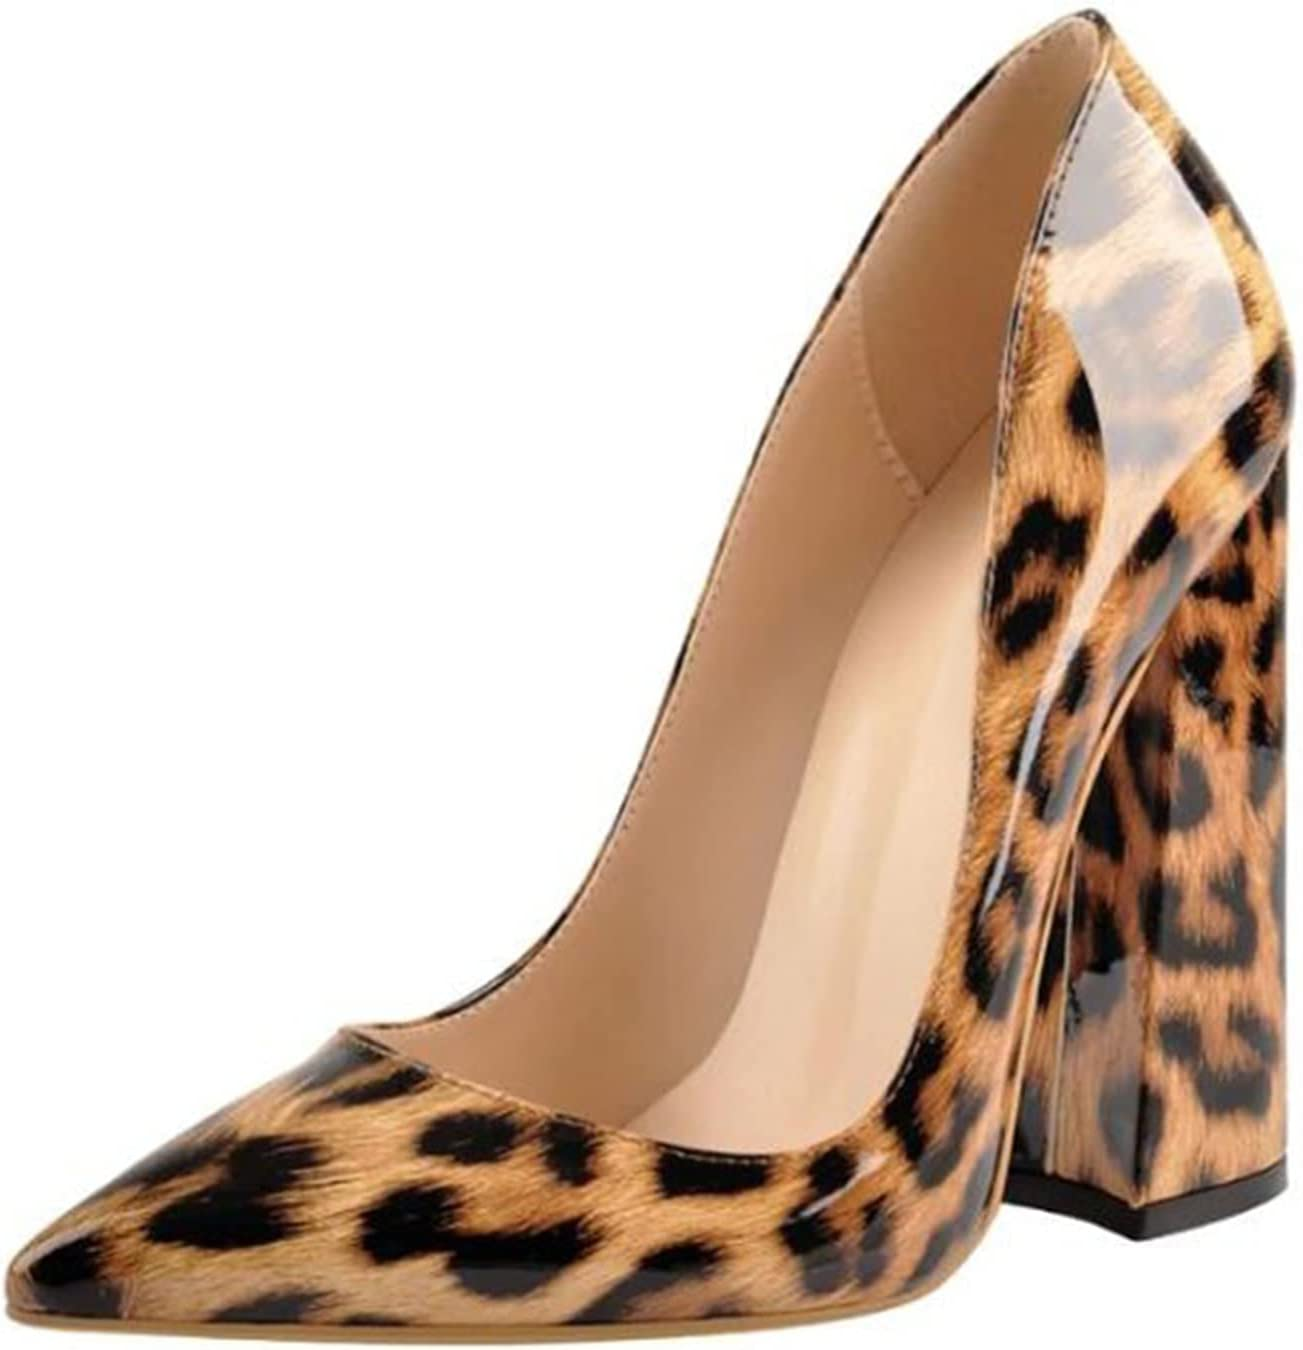 MOORRLII High Heels It is very High quality popular Pointed Shallow Thick Mout Heel